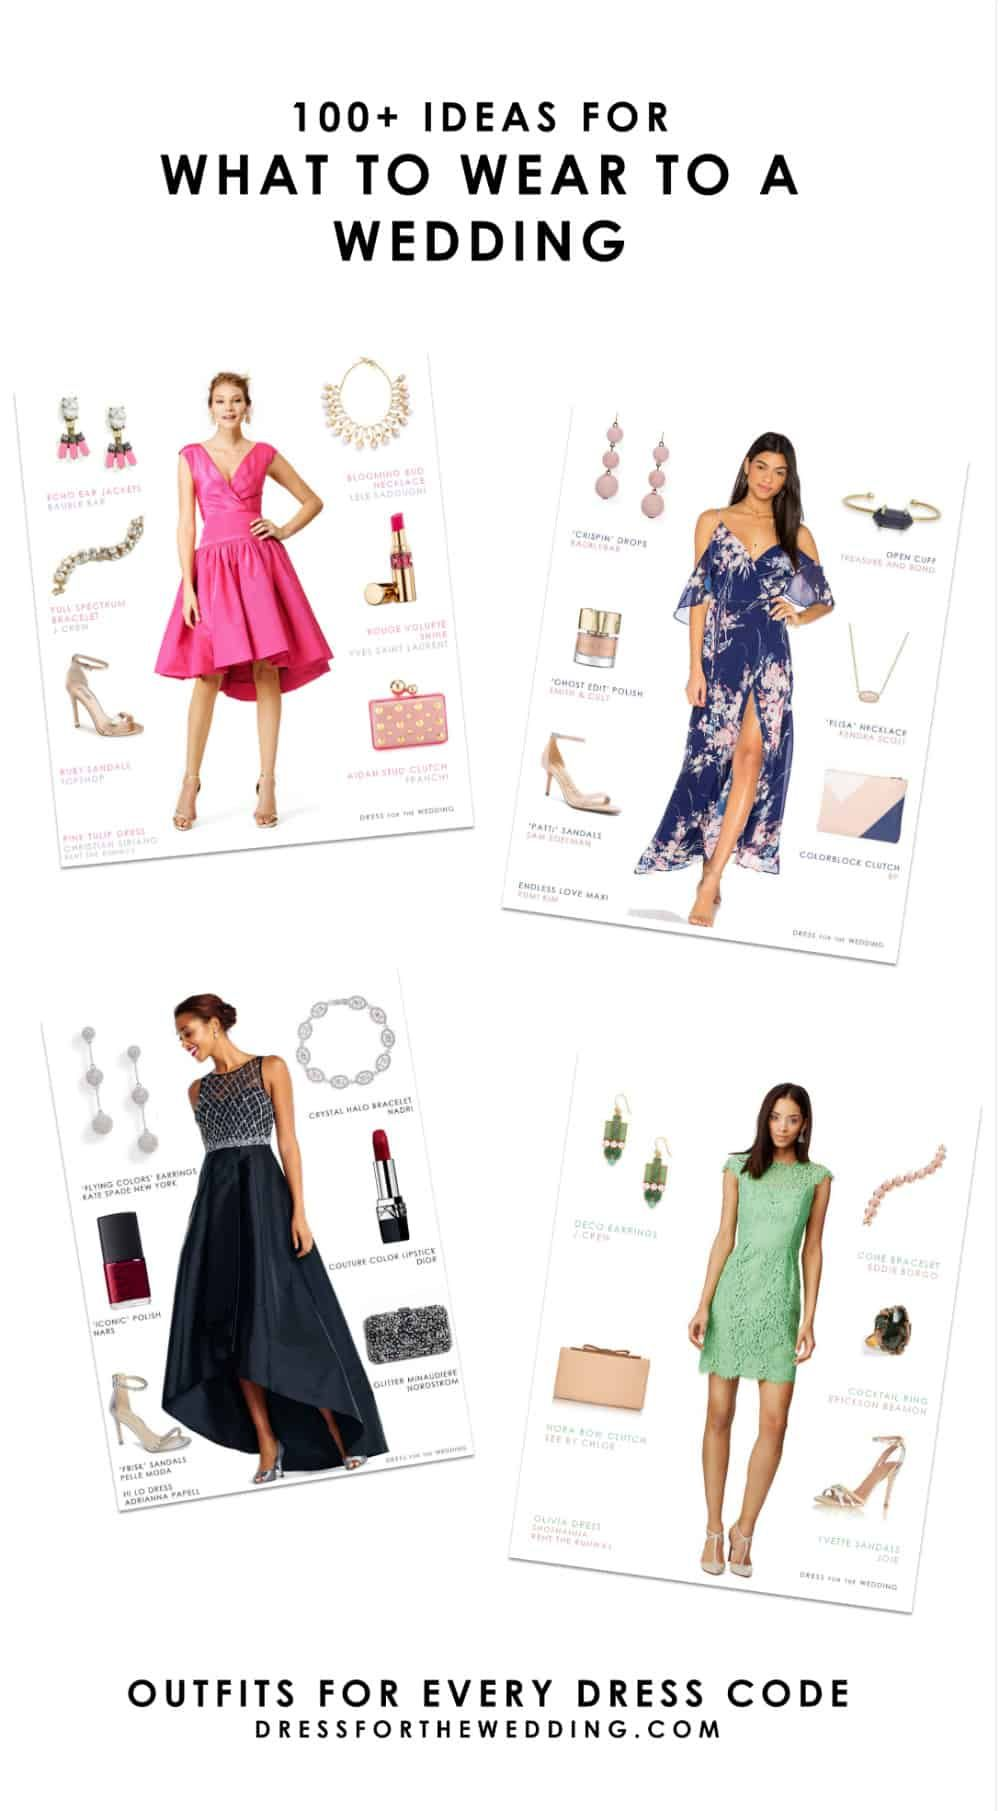 Wedding Guest Outfits Dress For The Wedding Semi Formal Outfits For Women Wedding Cocktail Wedding Attire Wedding Guest Outfit [ 1811 x 1000 Pixel ]